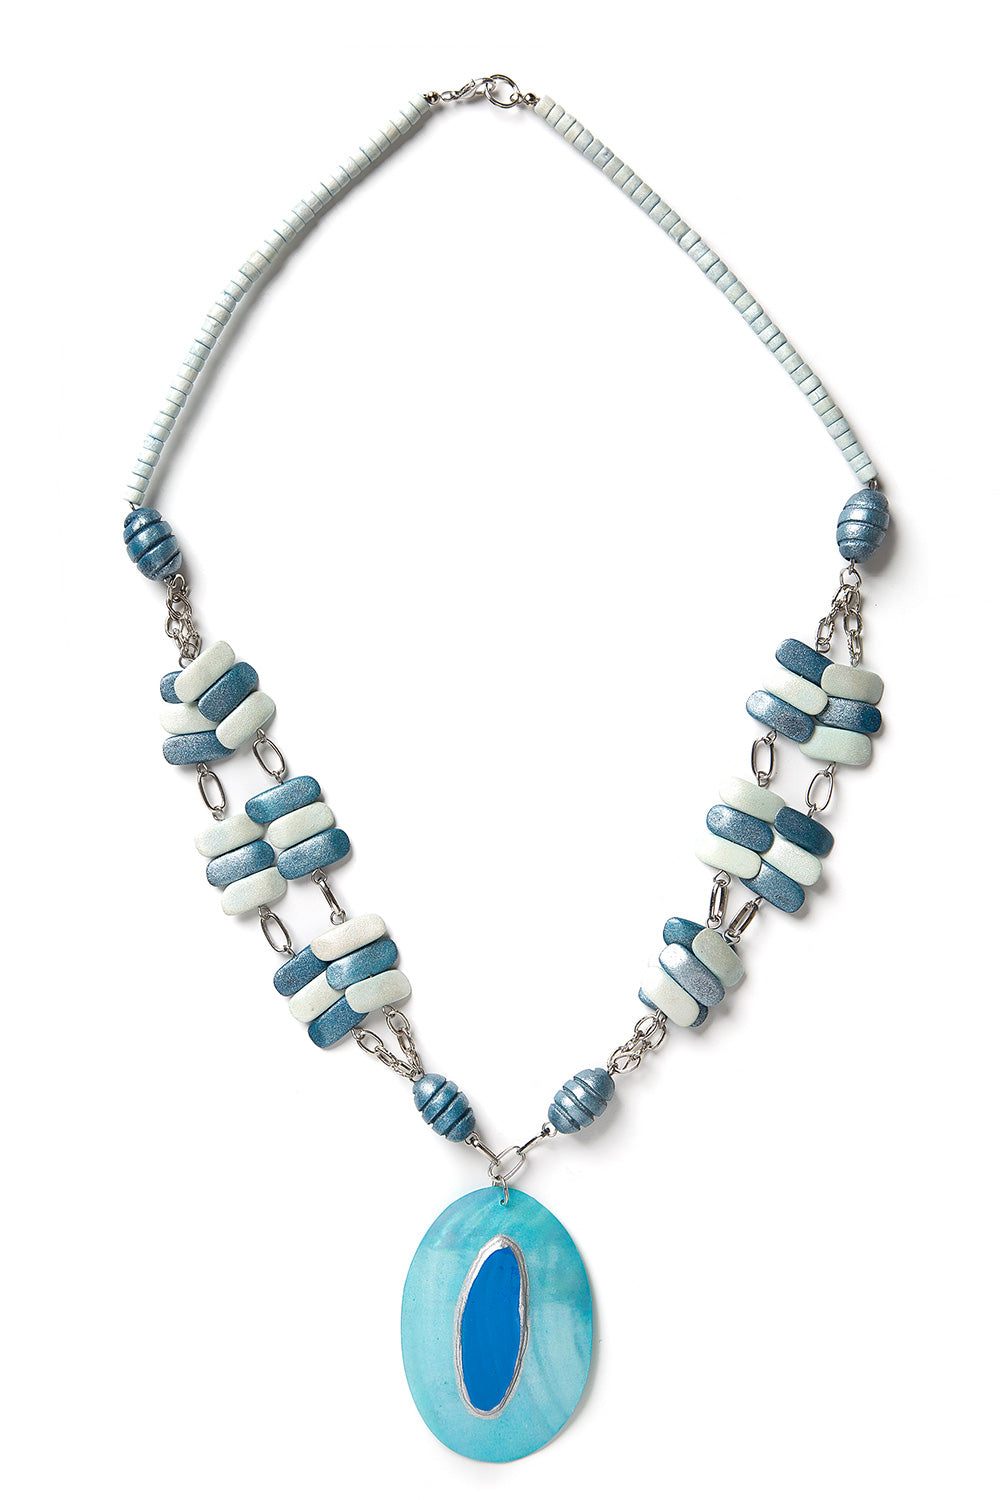 Type 2 Dreaming of the Beach Necklace